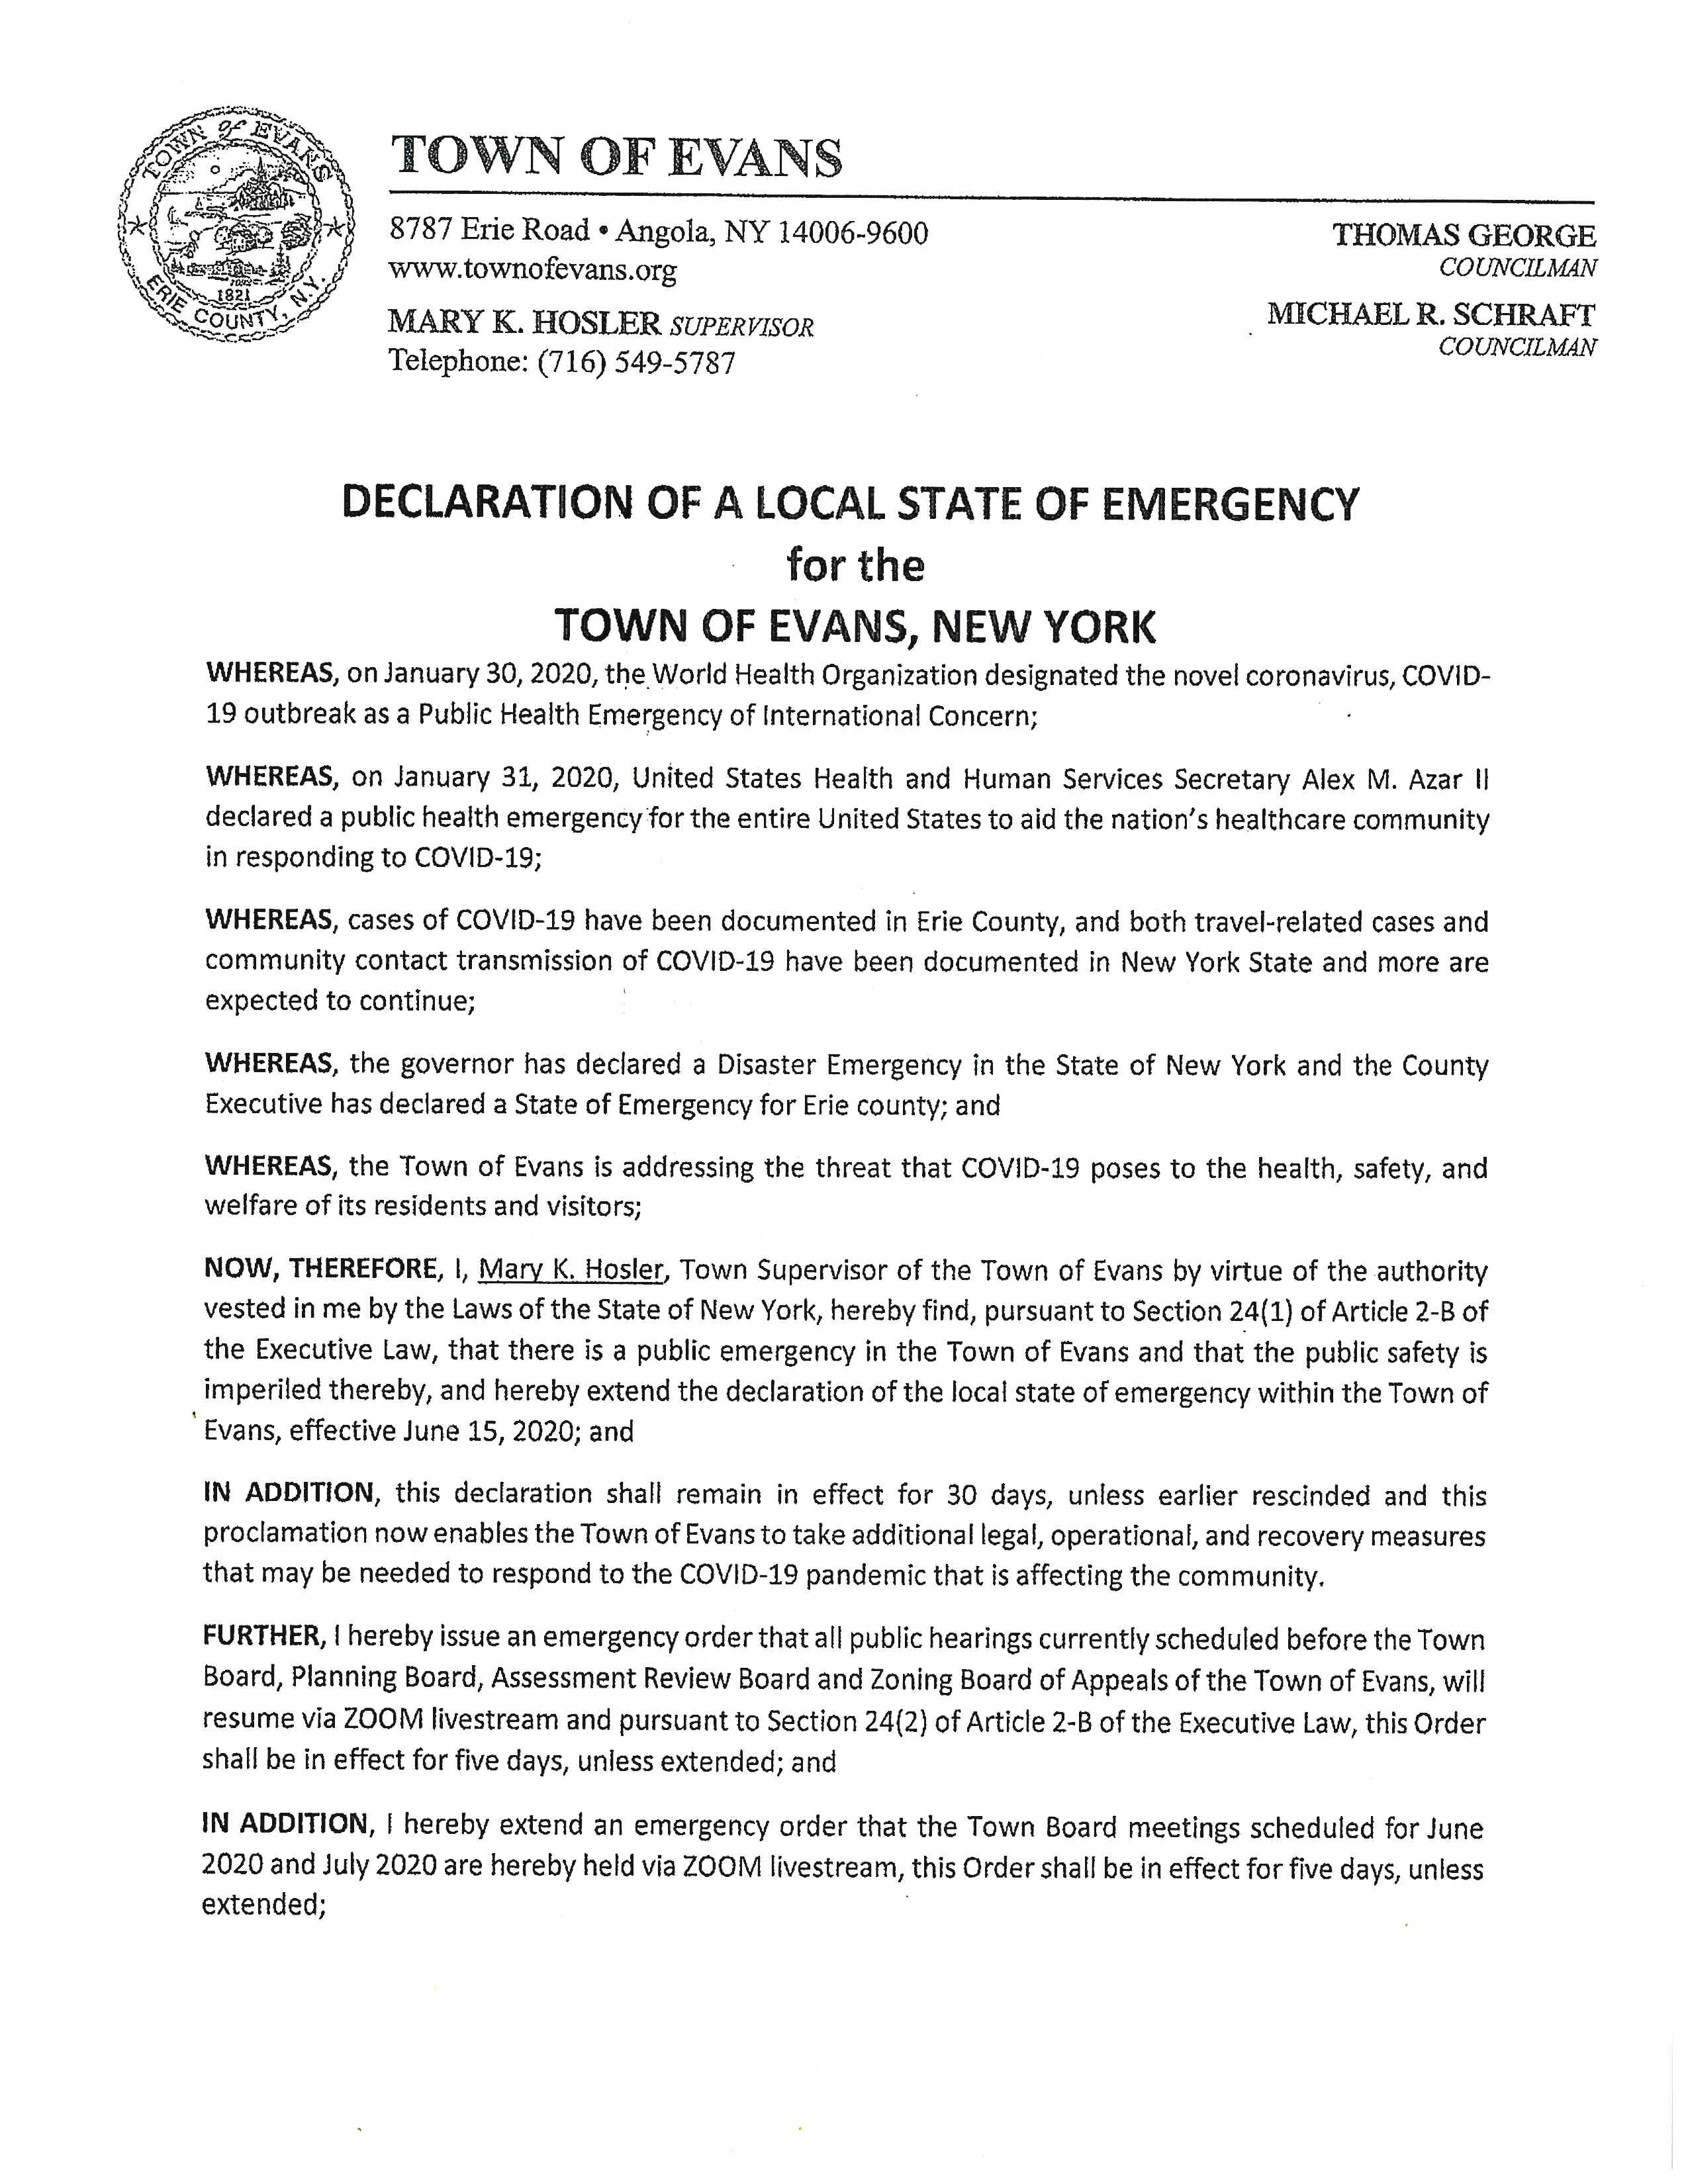 Emergency Declaration 2020 06 15 pg 1